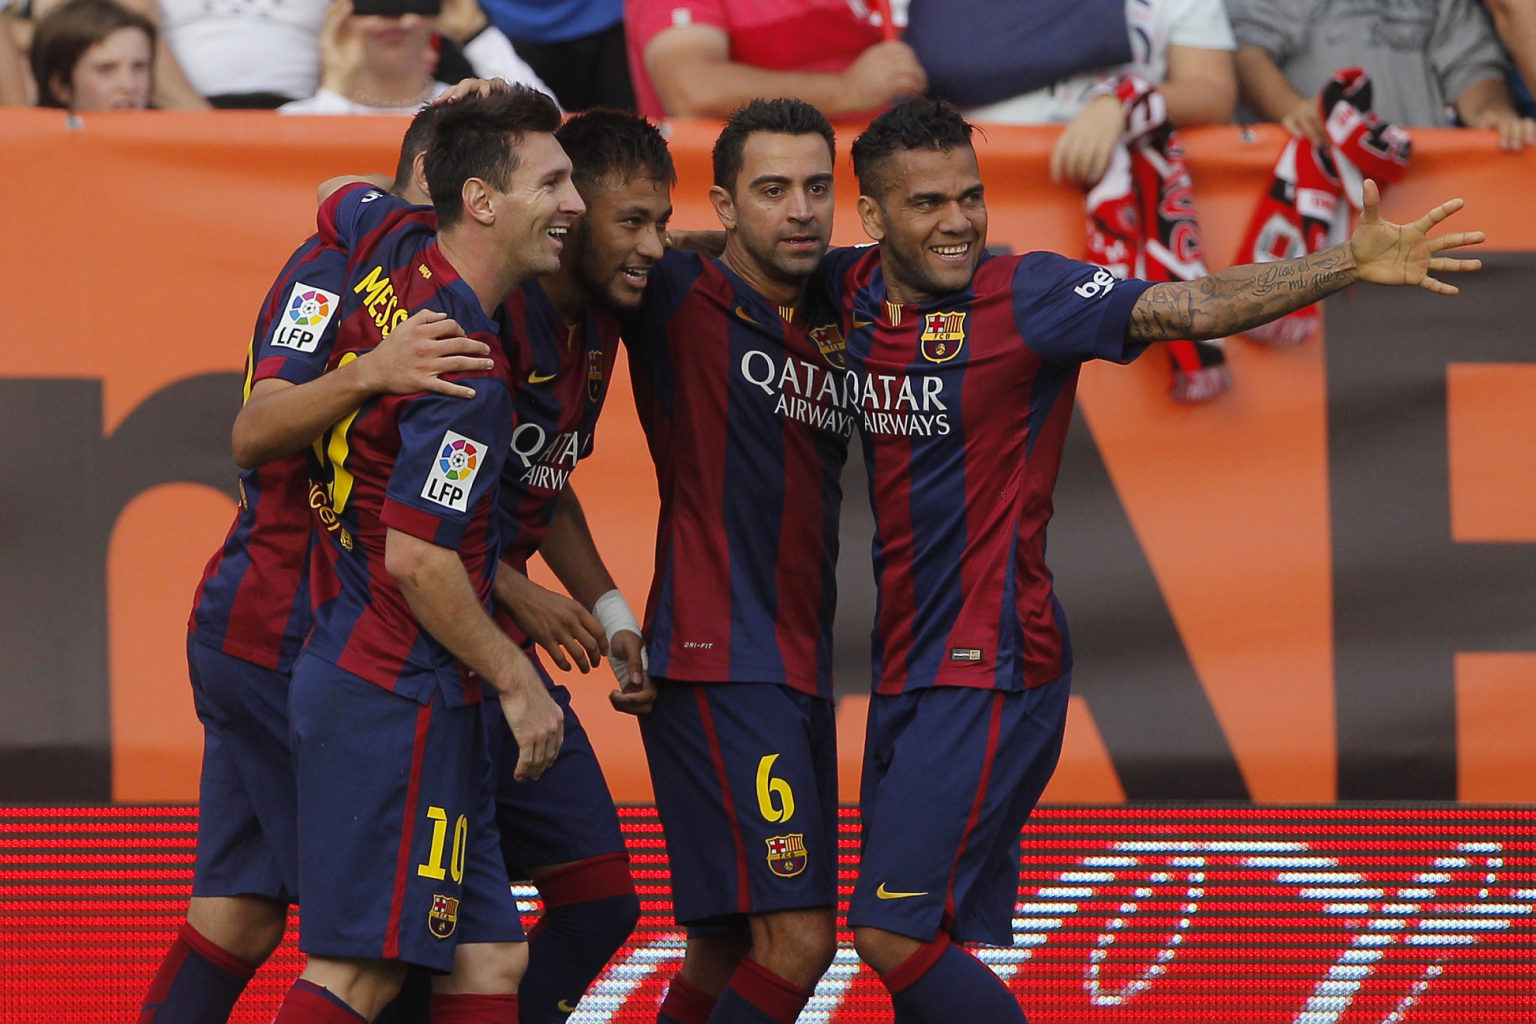 Neymar well adapted to his Barcelona teammates